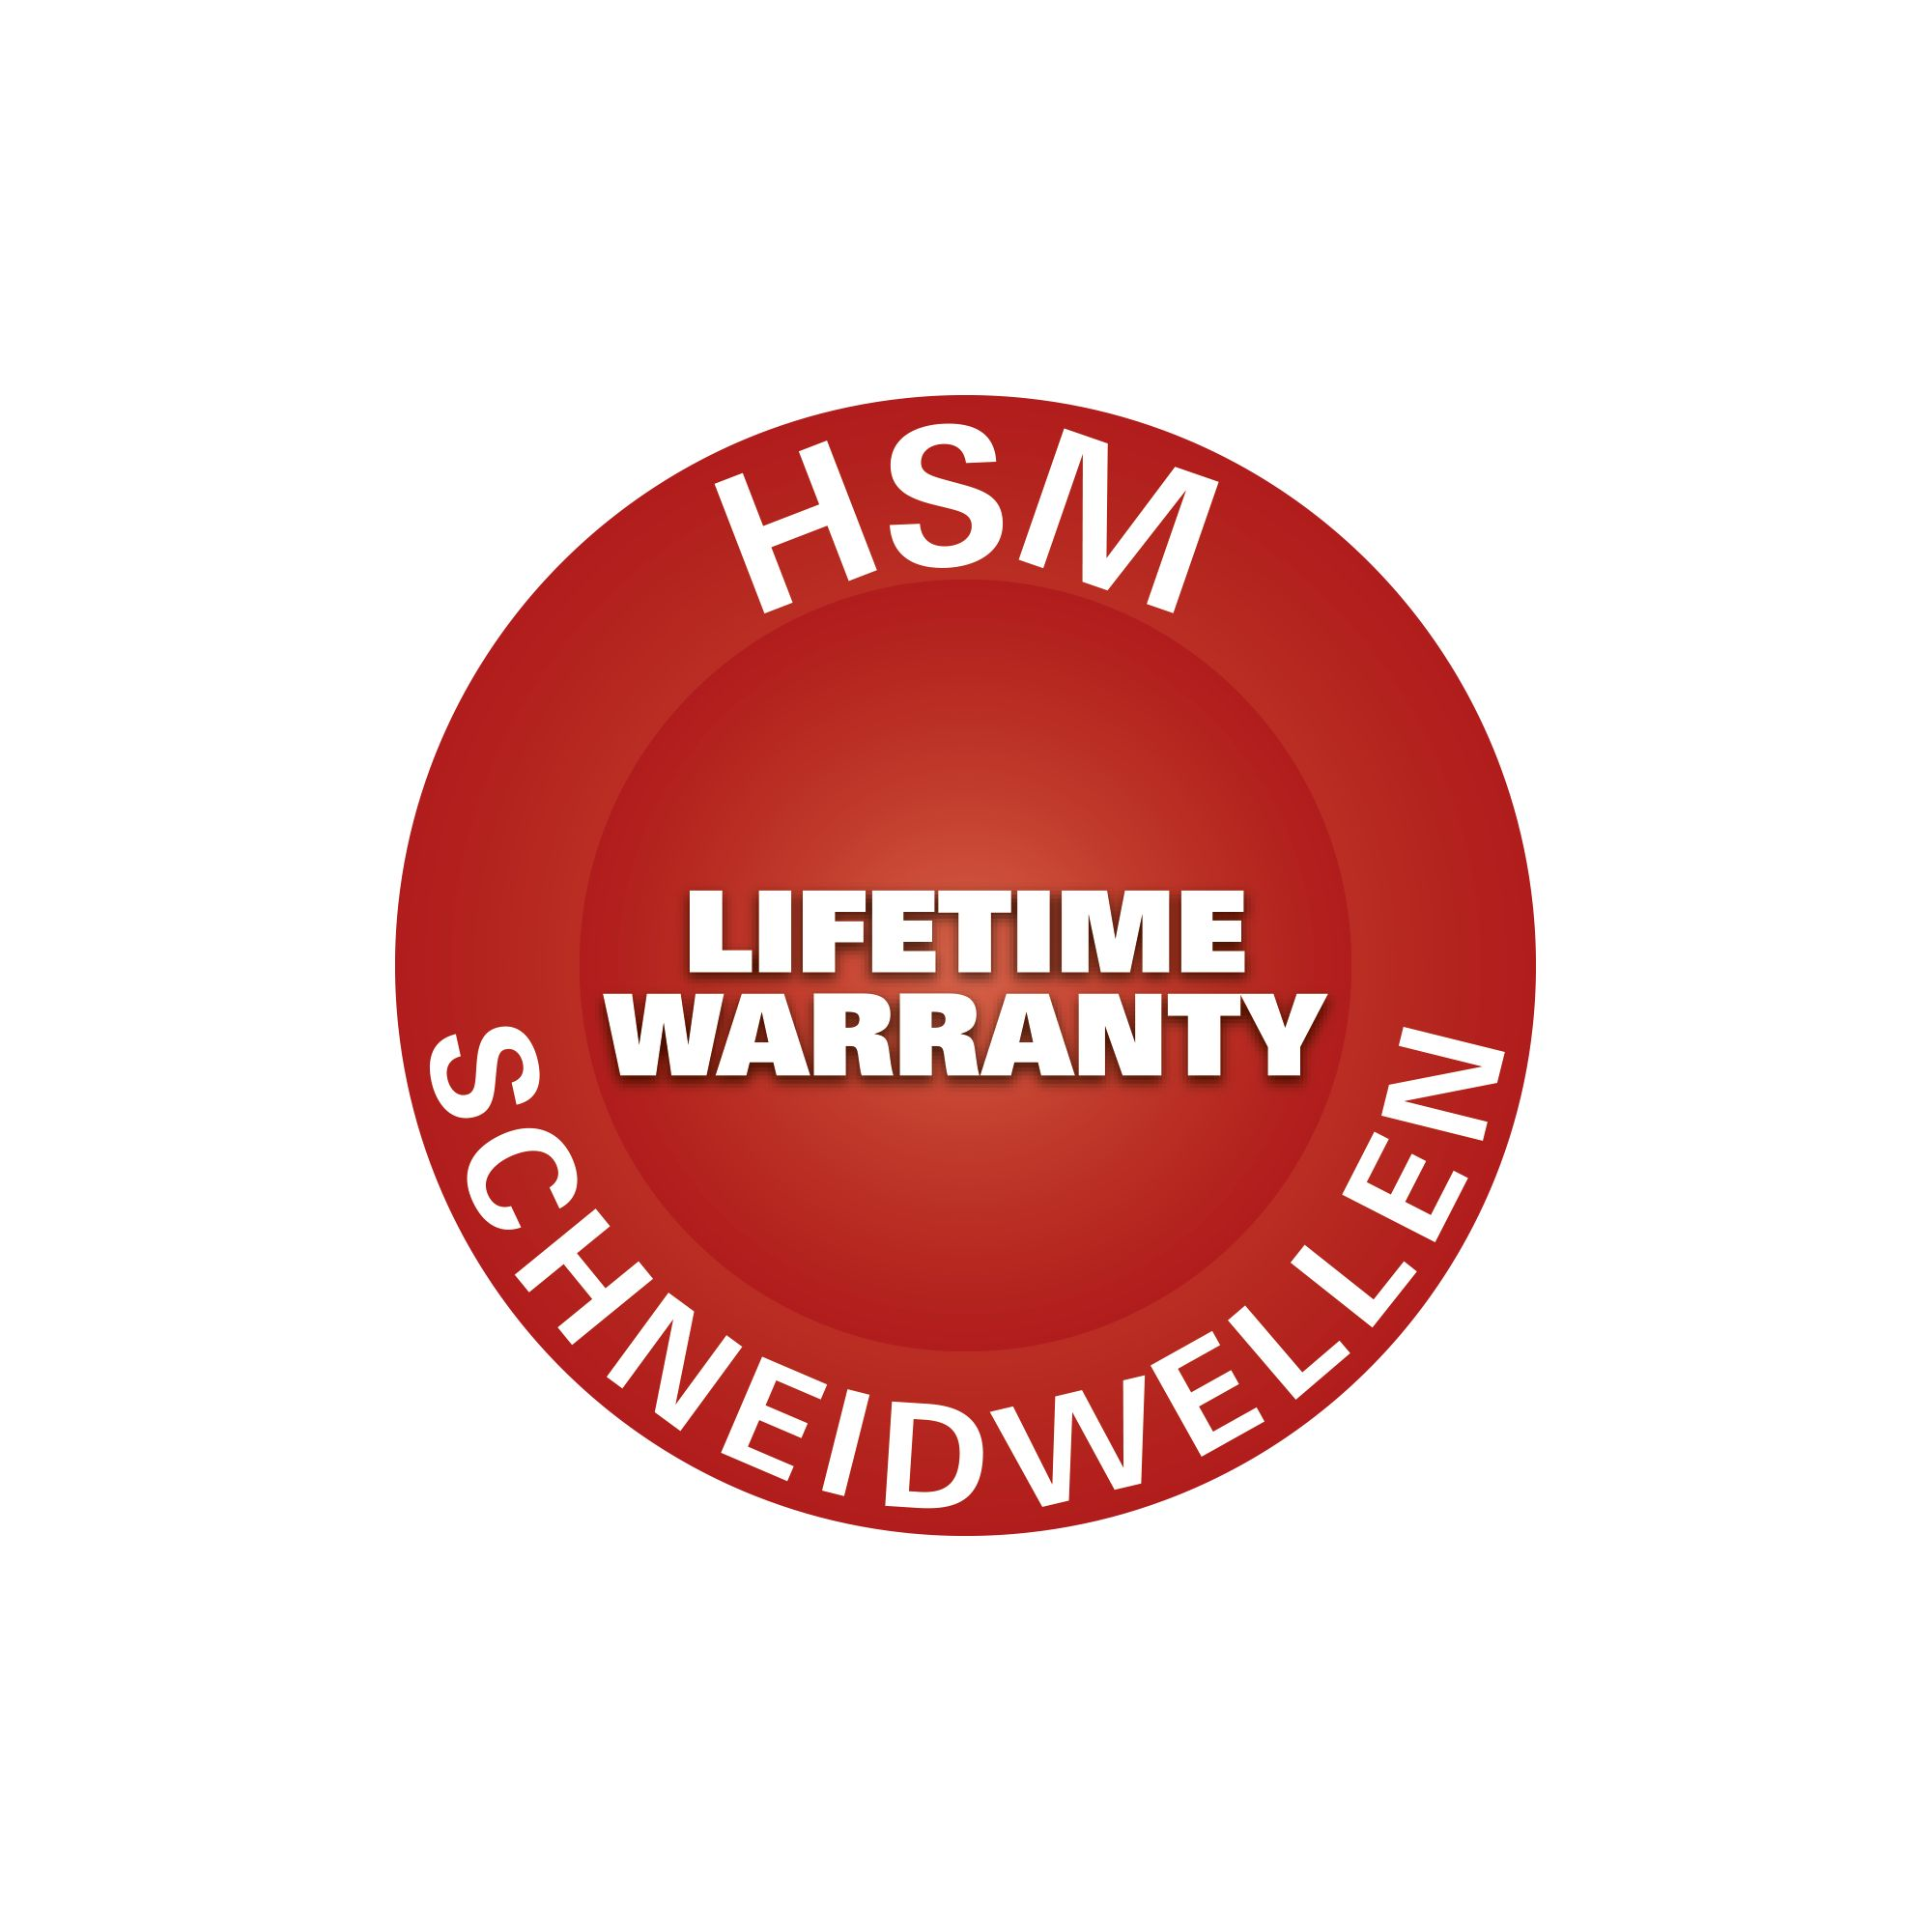 De hsm button lifetime warranty